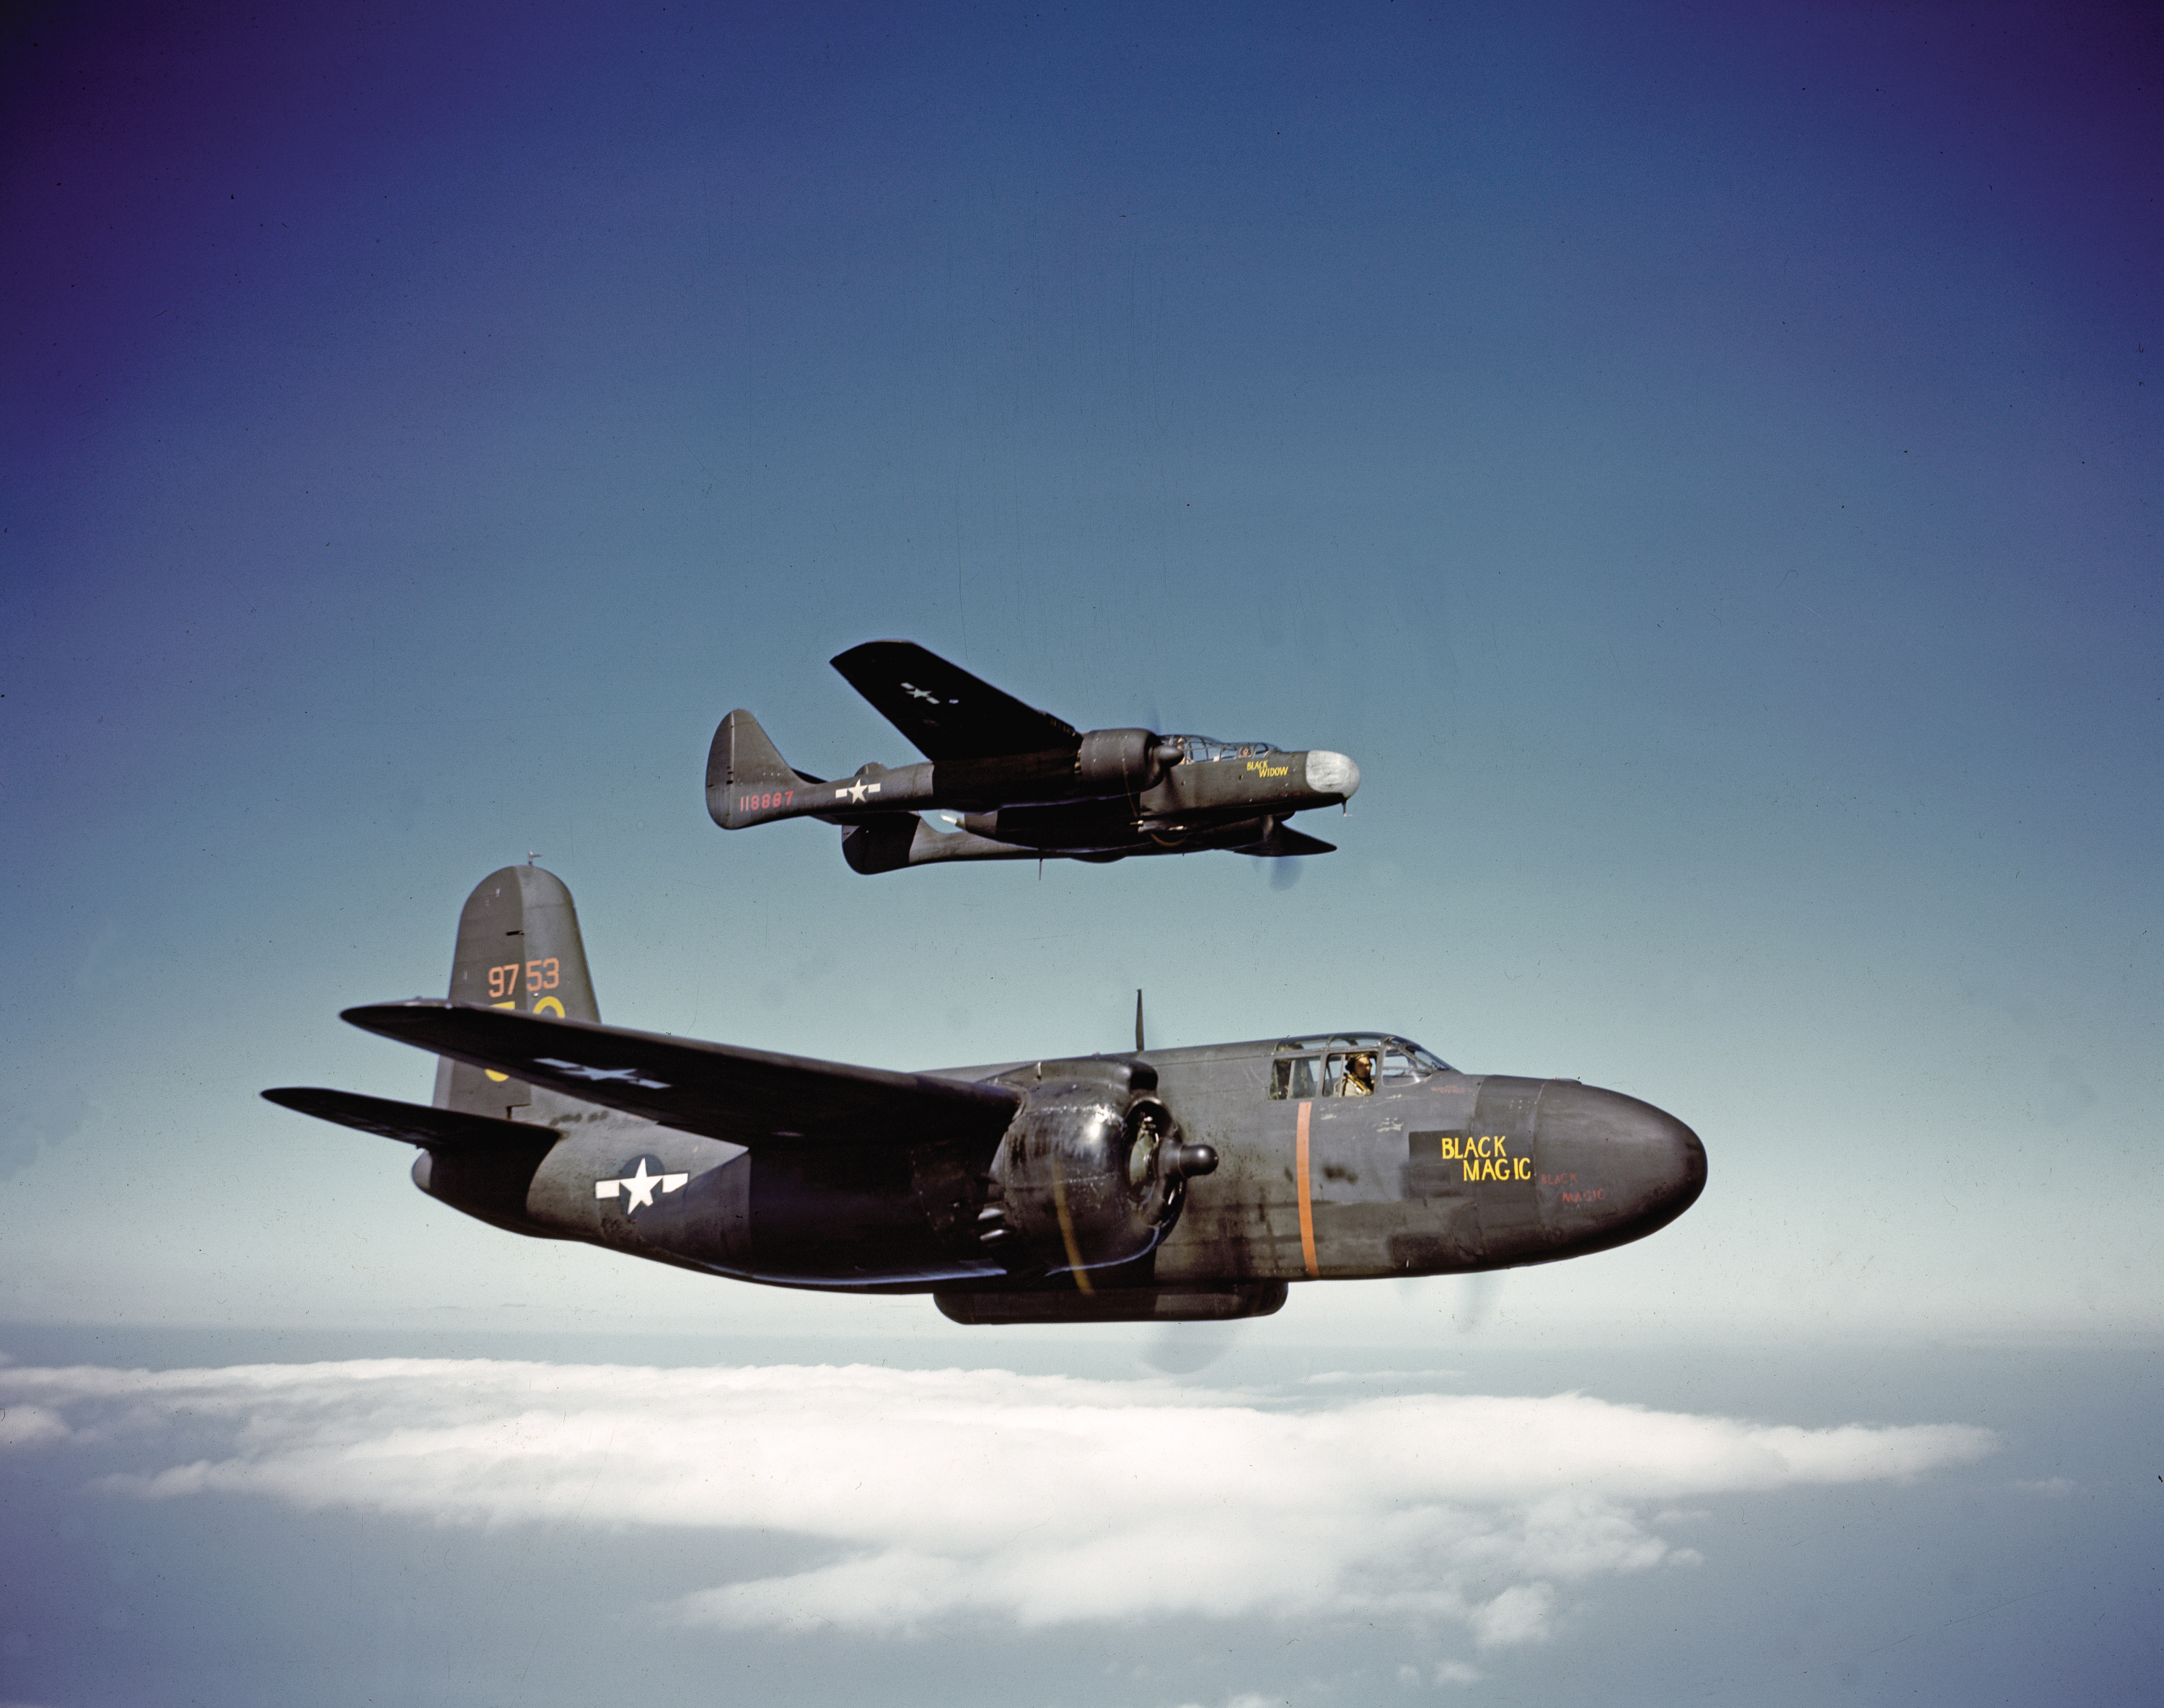 Northrop P-61C Black Widow | National Air and Space Museum